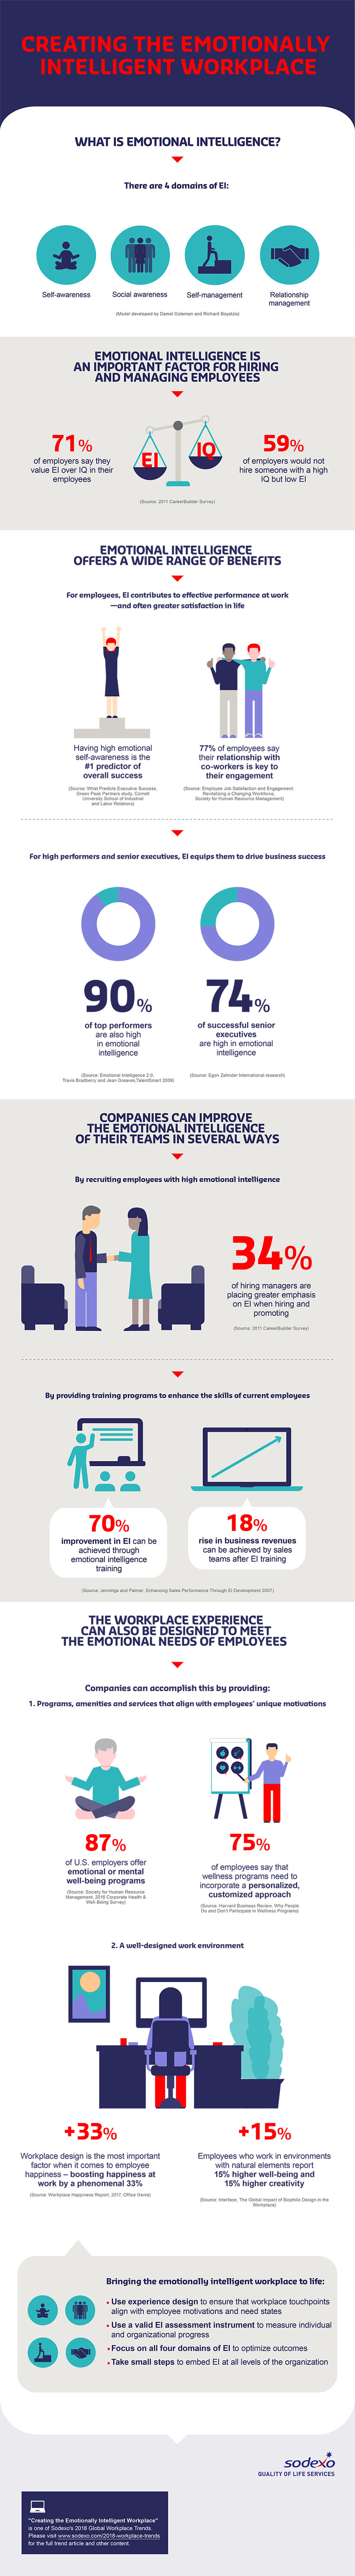 Infographic: Creating the Emotionally Intelligent Workplace